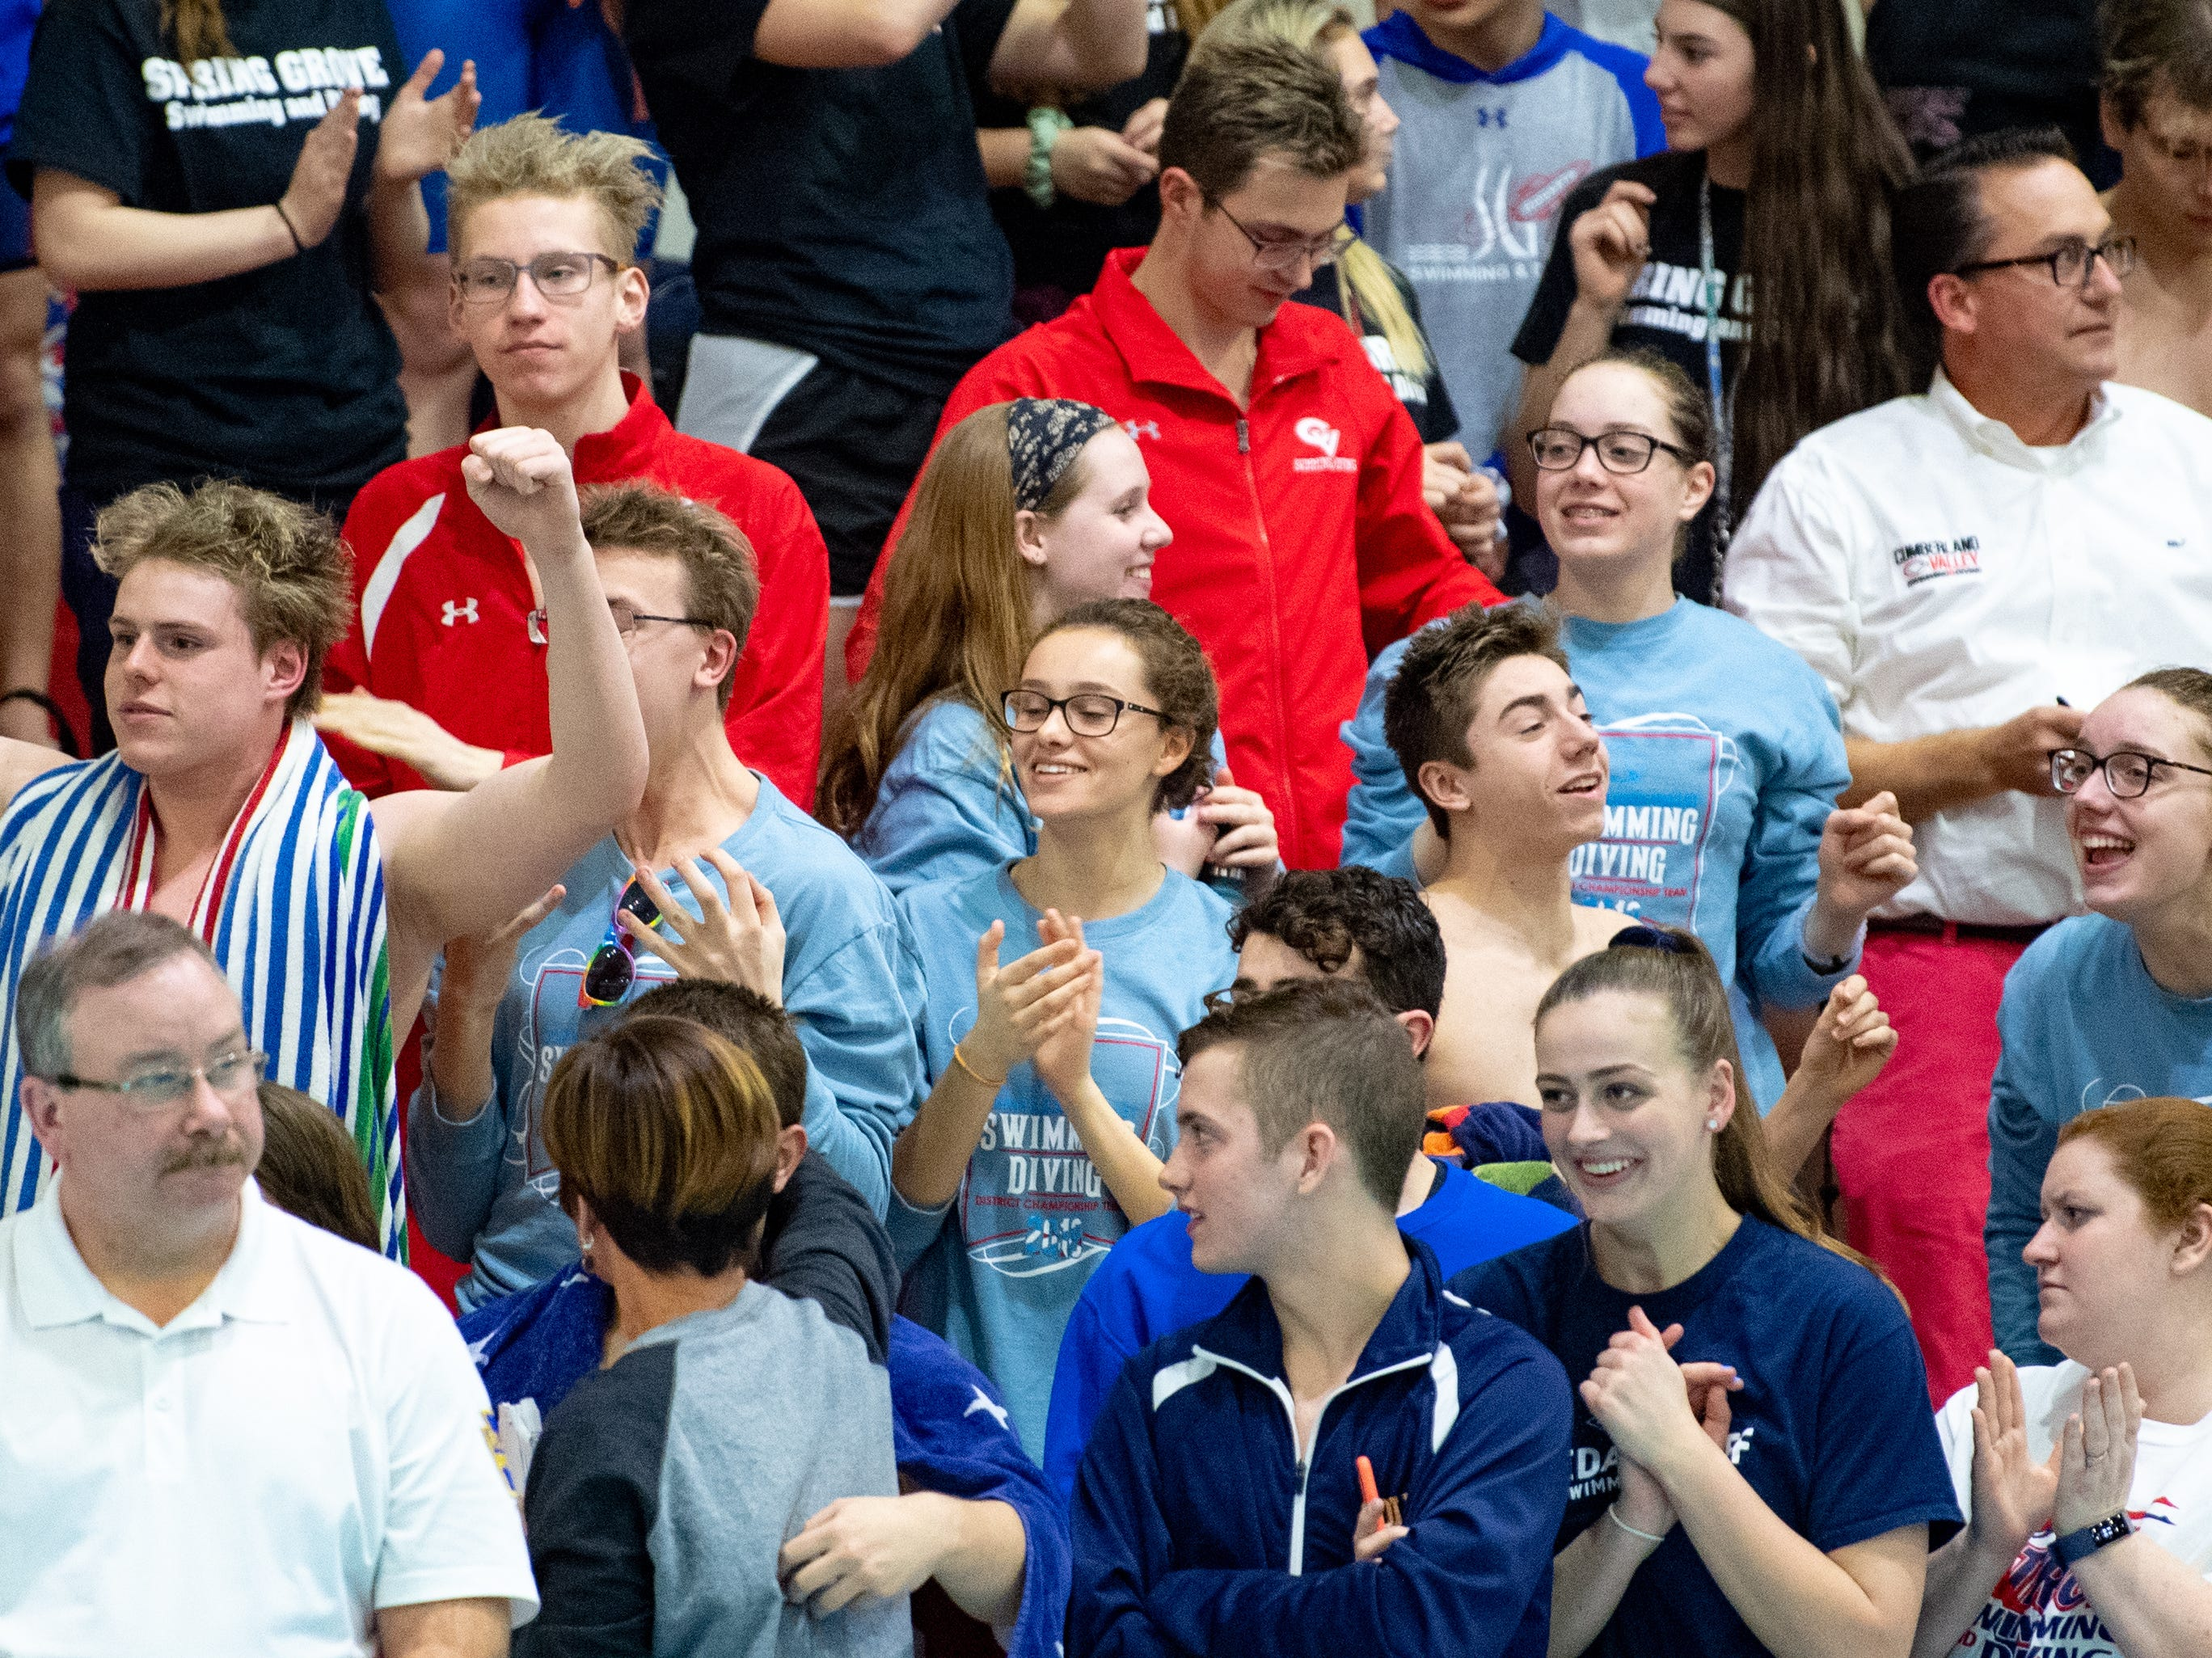 Fans cheer for their respective teams during the PIAA District 3 Boys AAA Championship, March 1, 2019 at Cumberland Valley High School.